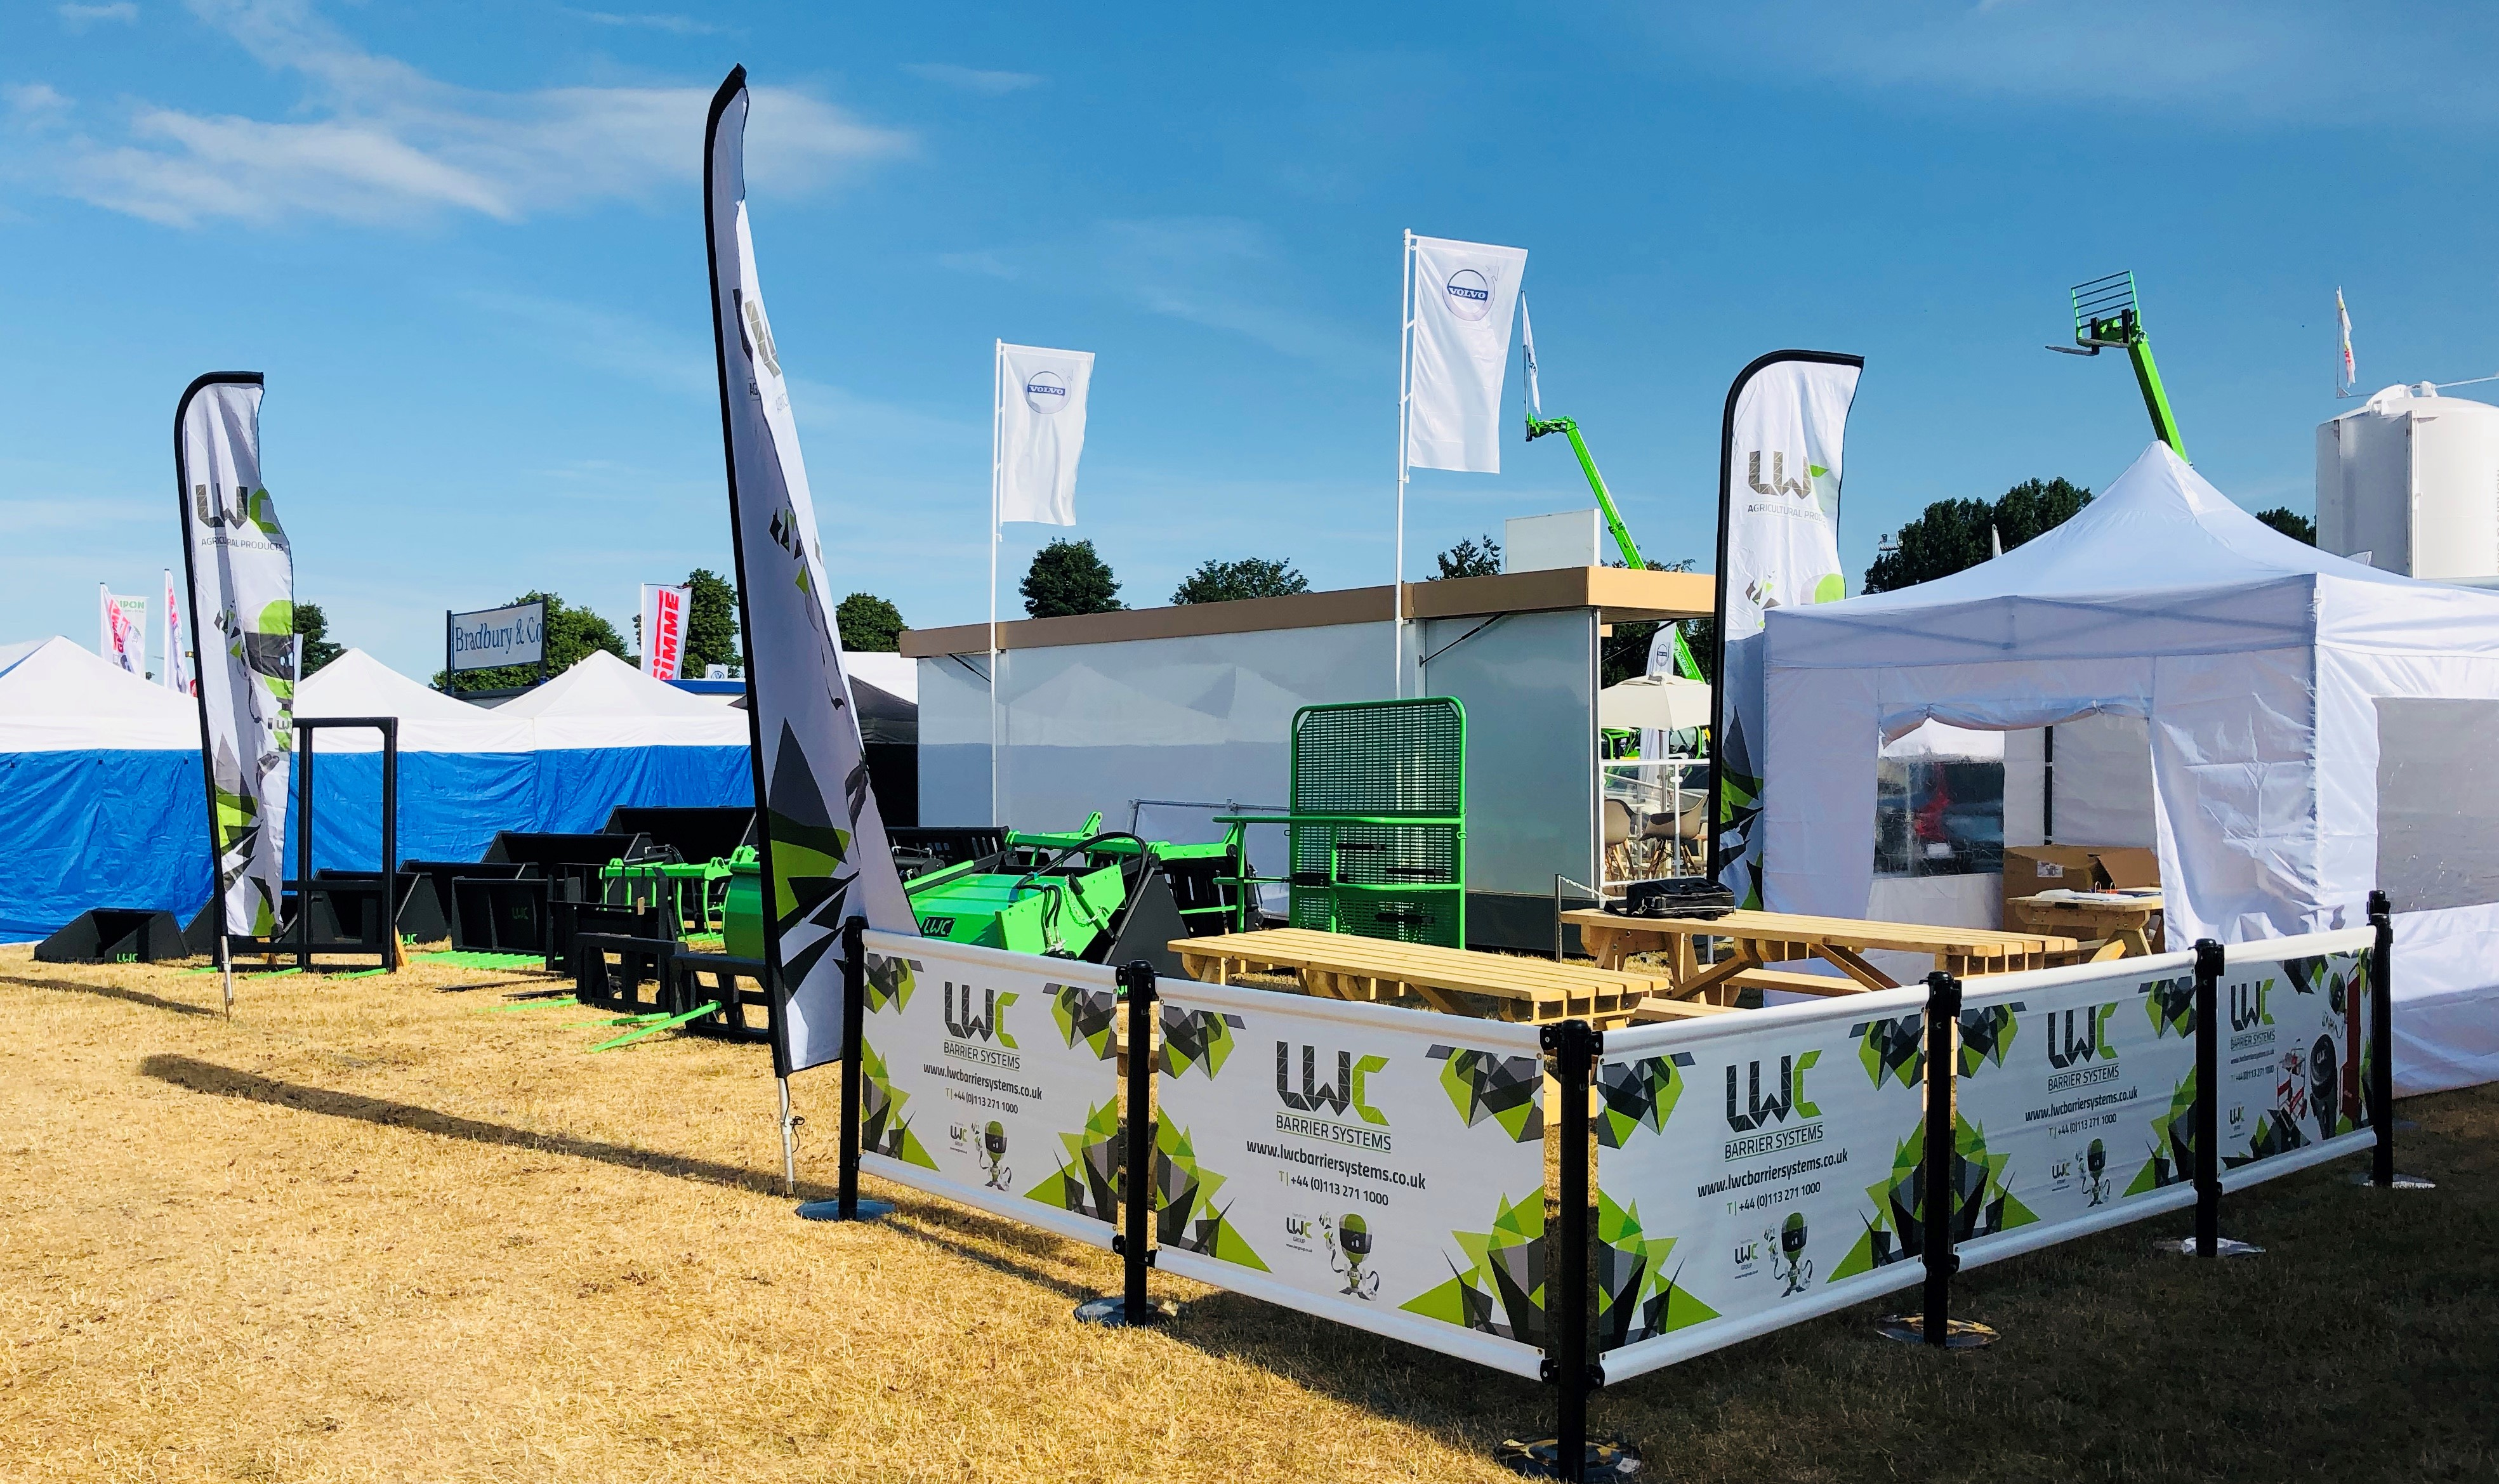 See us again at the Driffield Show